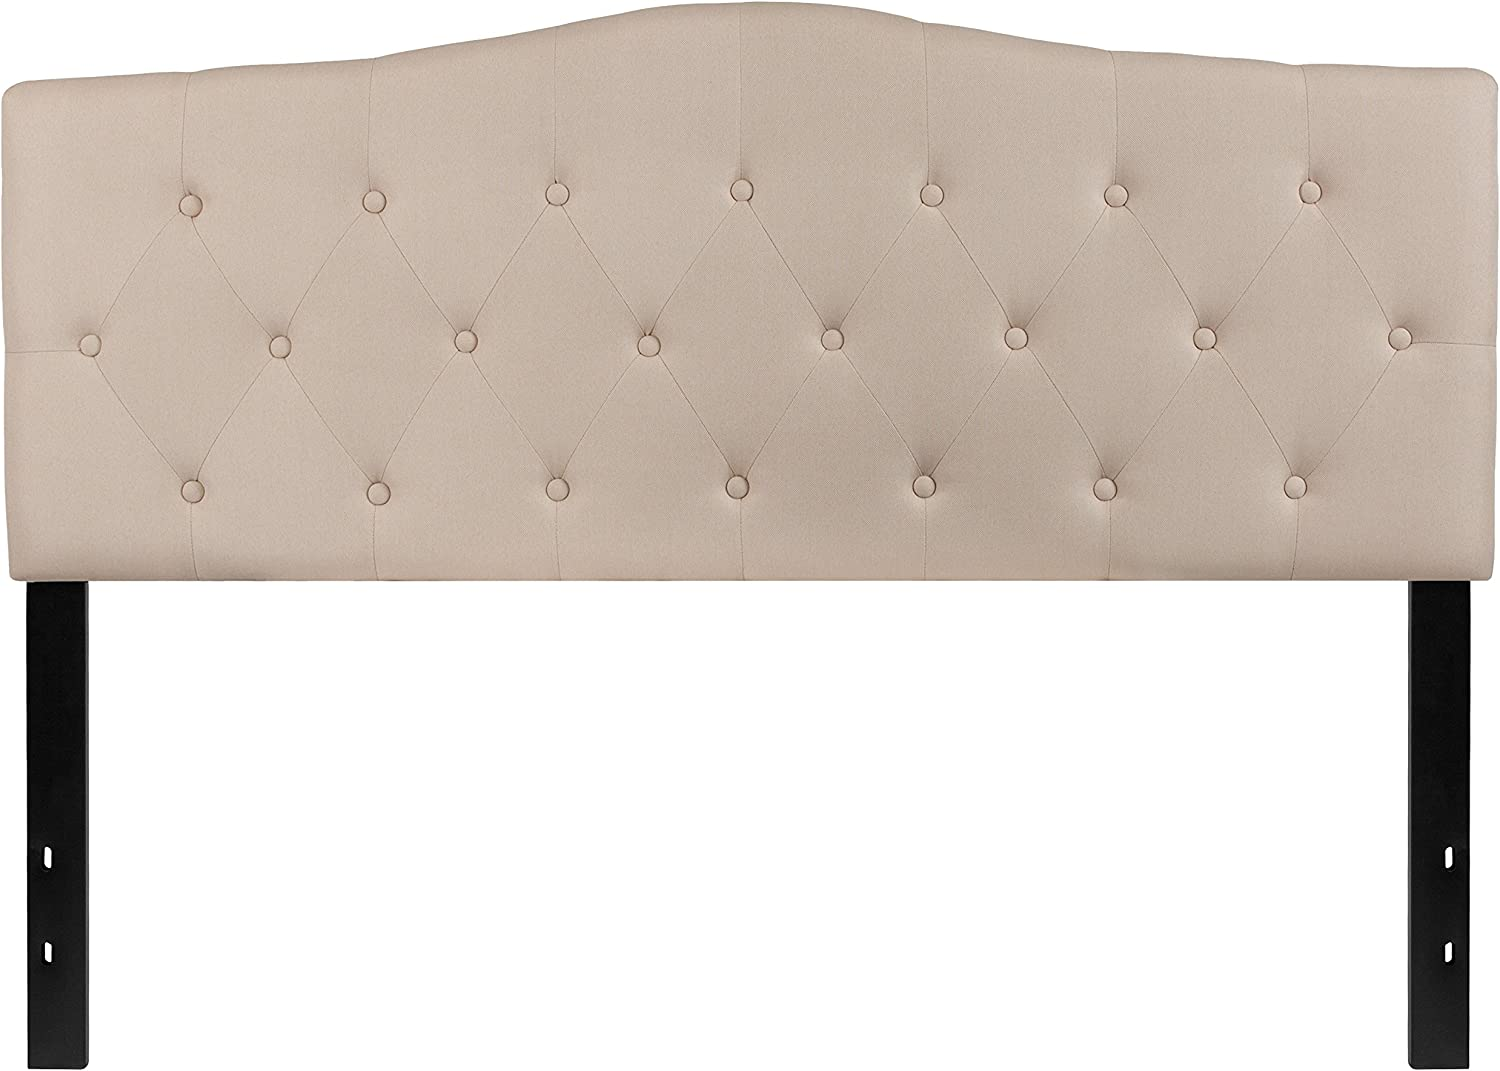 Flash Furniture Cambridge Tufted Upholstered Queen Size Headboard in Beige Fabric